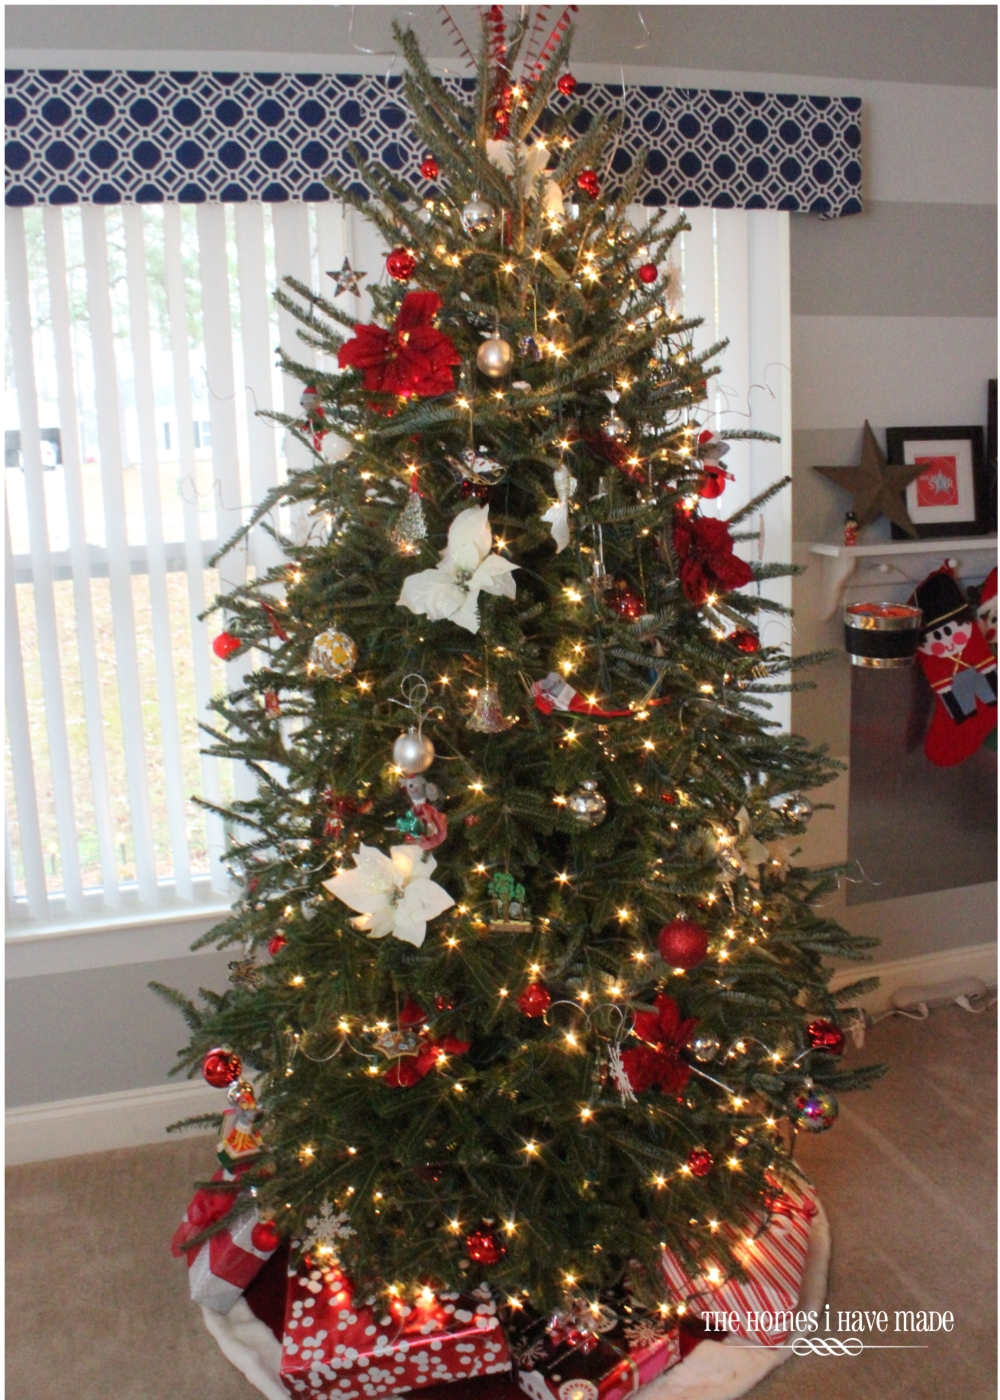 Jasmine Terrace: Holiday Home Tour - Christmas In Every Room!